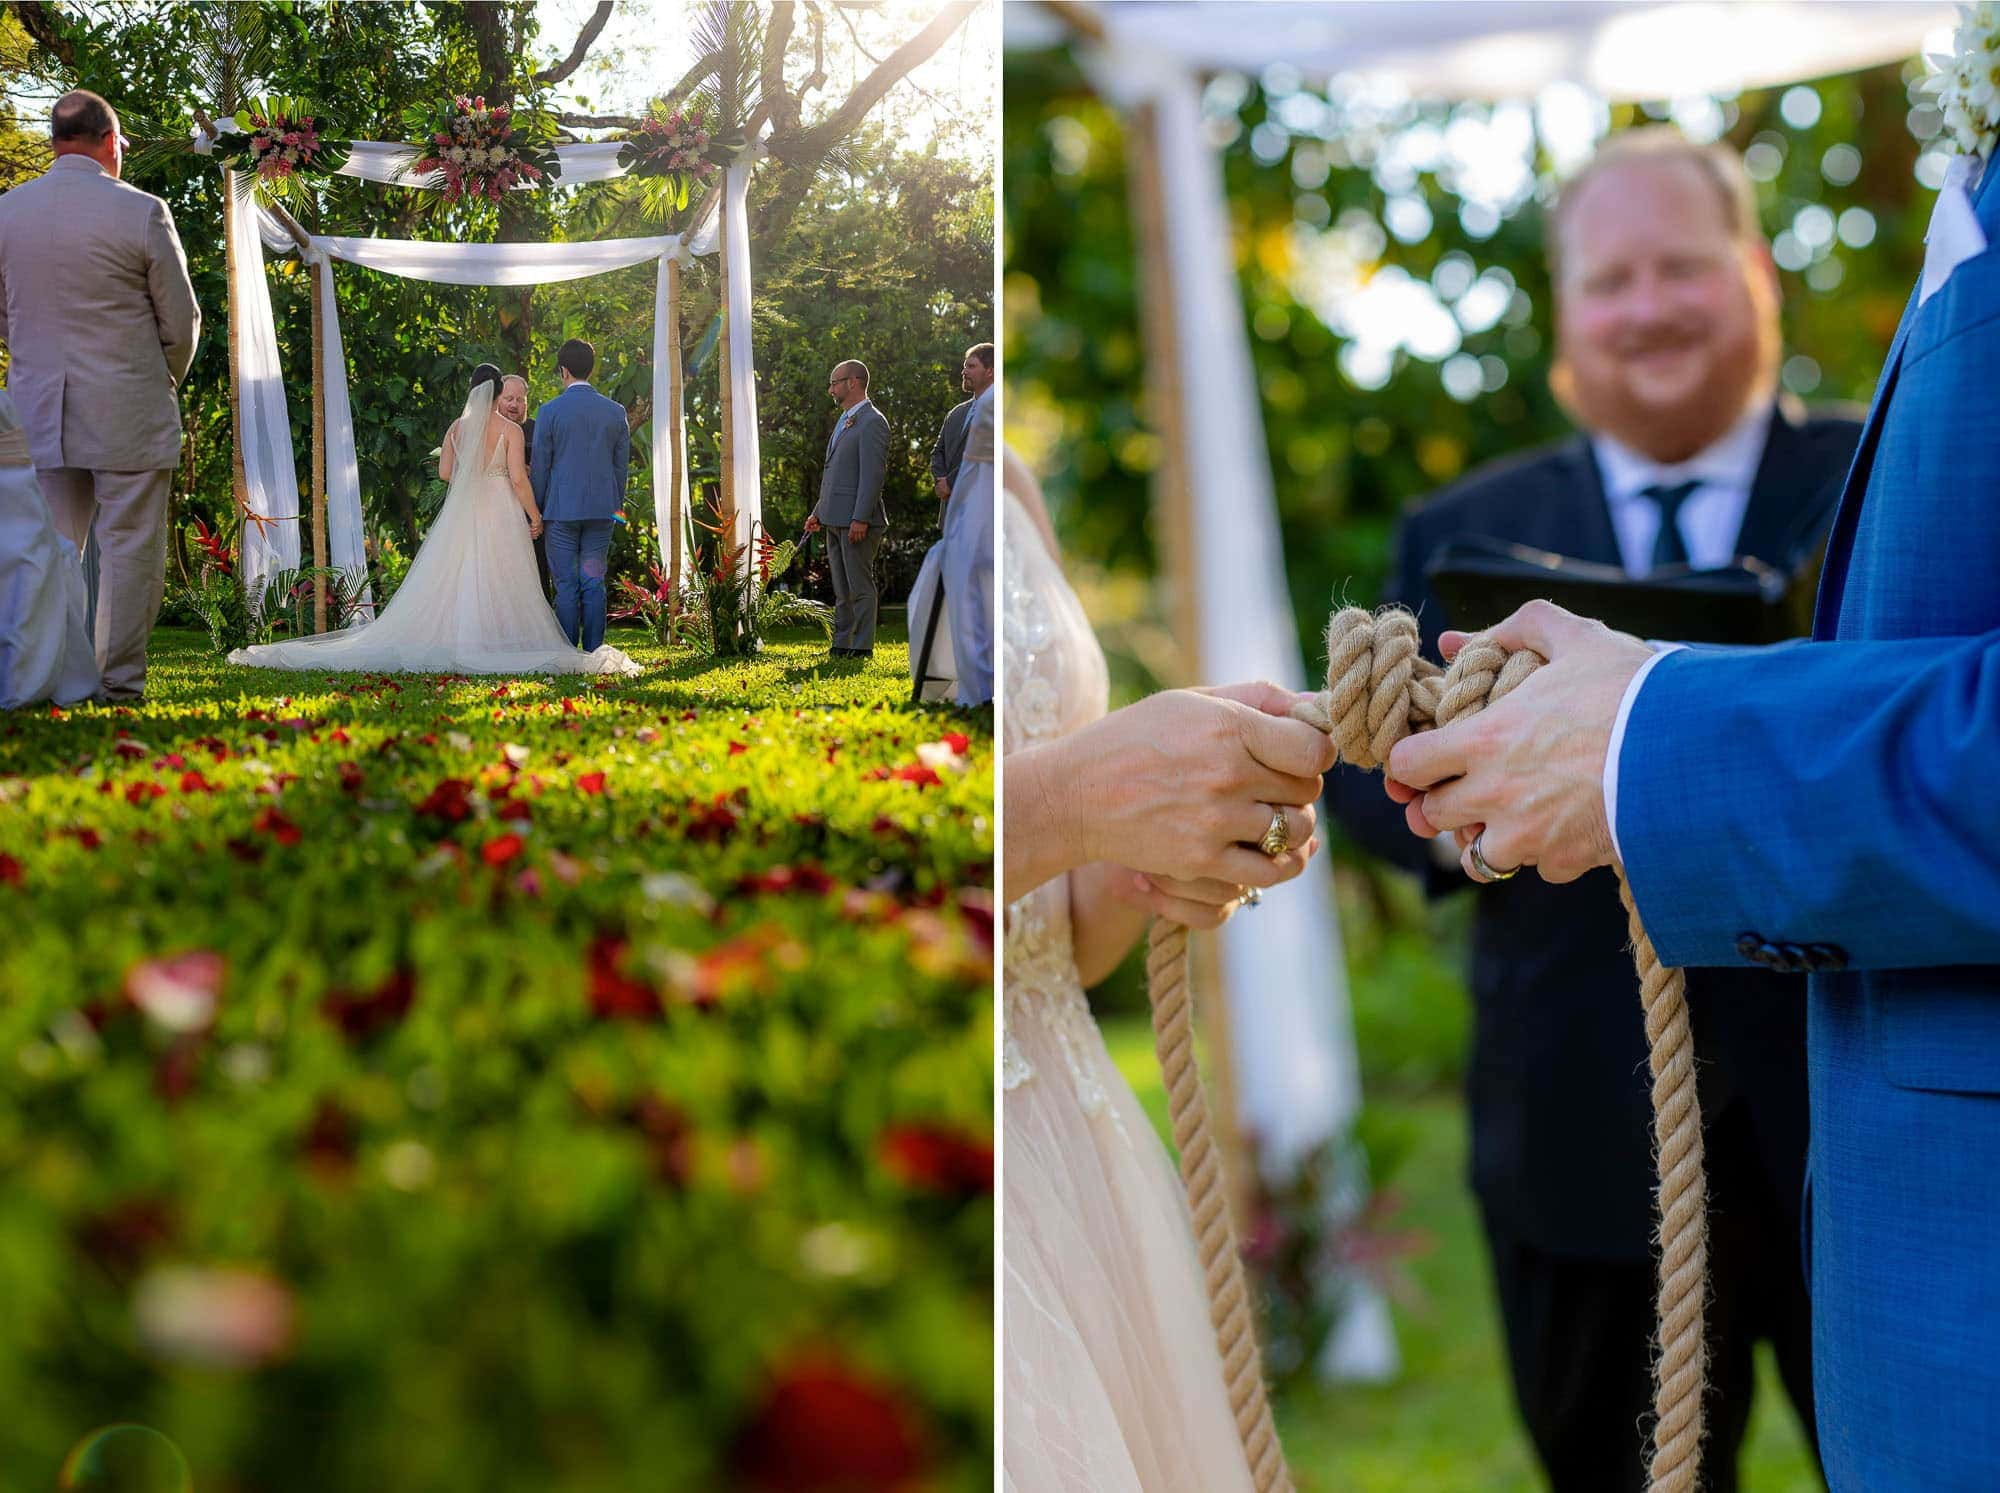 tying the knot at doce lunas